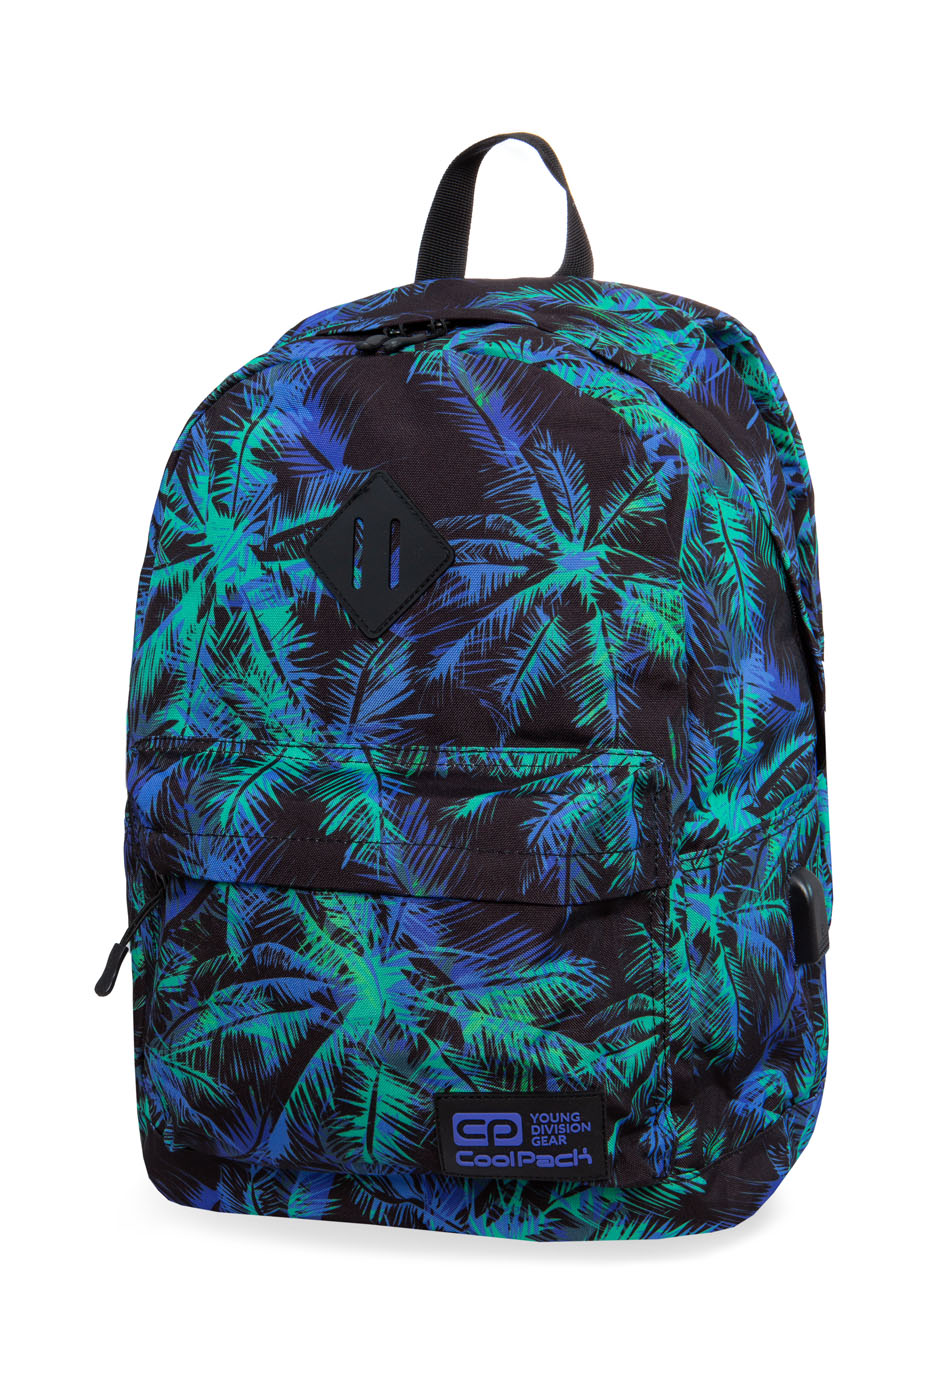 Coolpack - cross - youth backpack - palms tangle